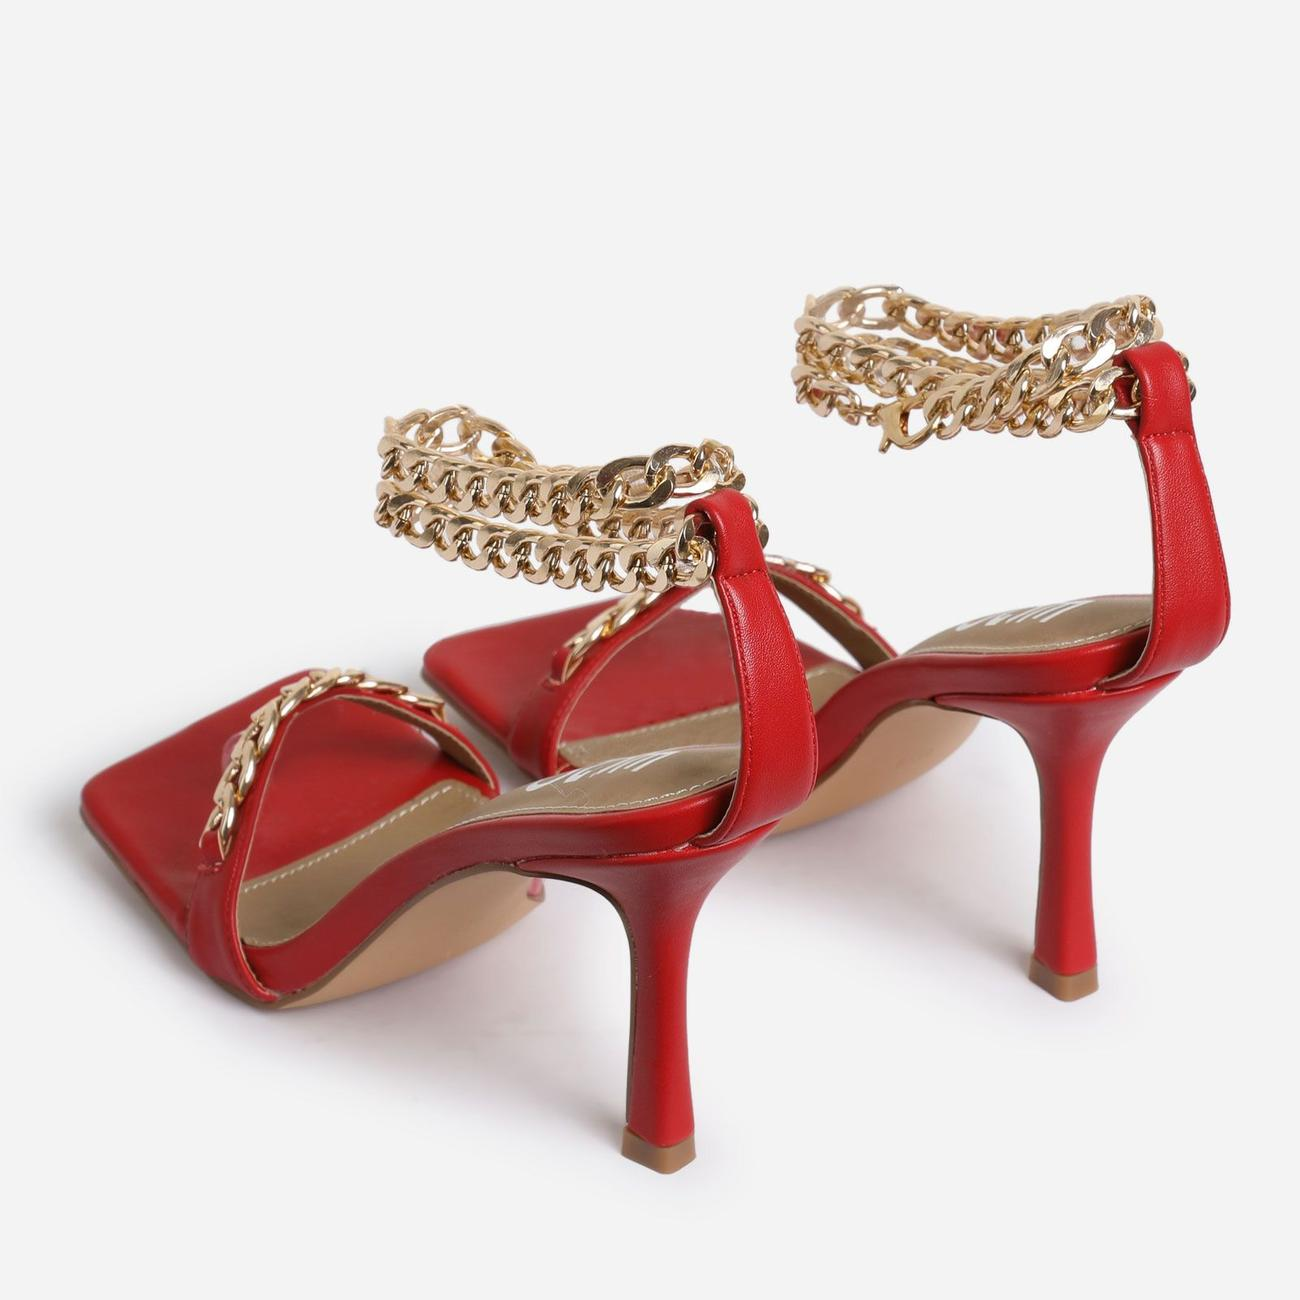 Venice Chain Detail Strap Square Toe Barely There Heel In Red Faux Leather Image 3